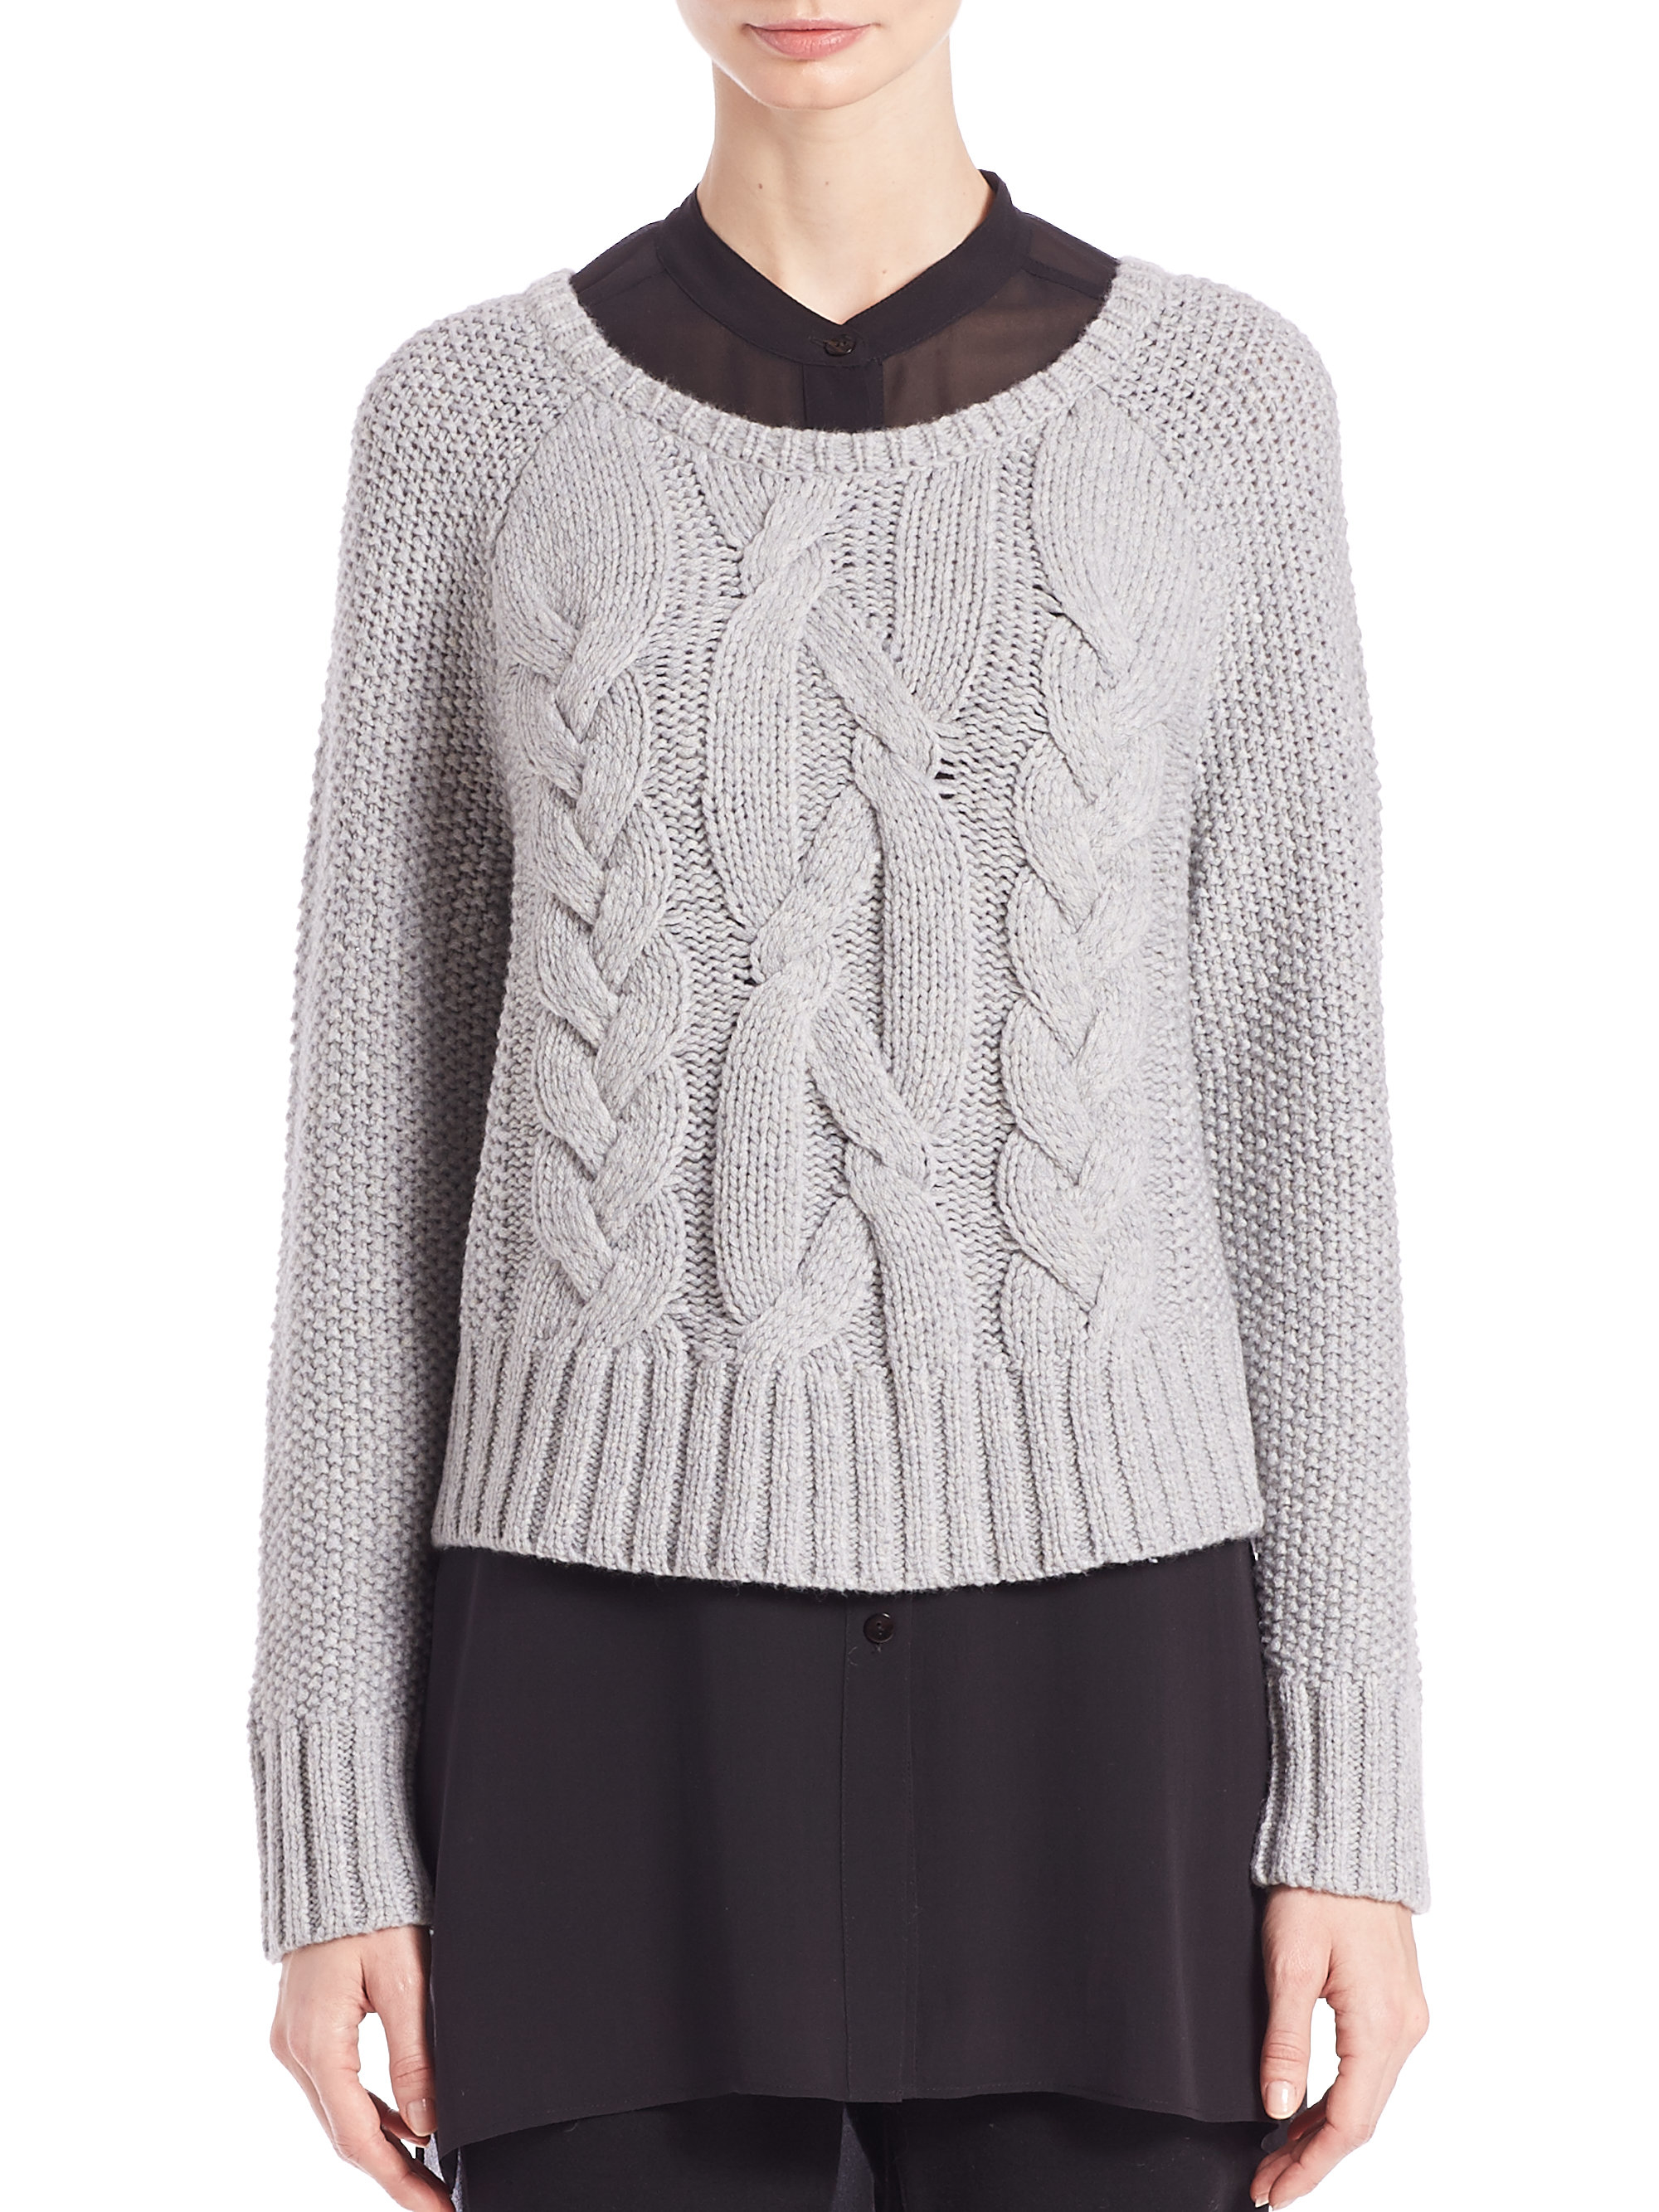 Eileen fisher Cropped Cable-knit Sweater in Gray | Lyst